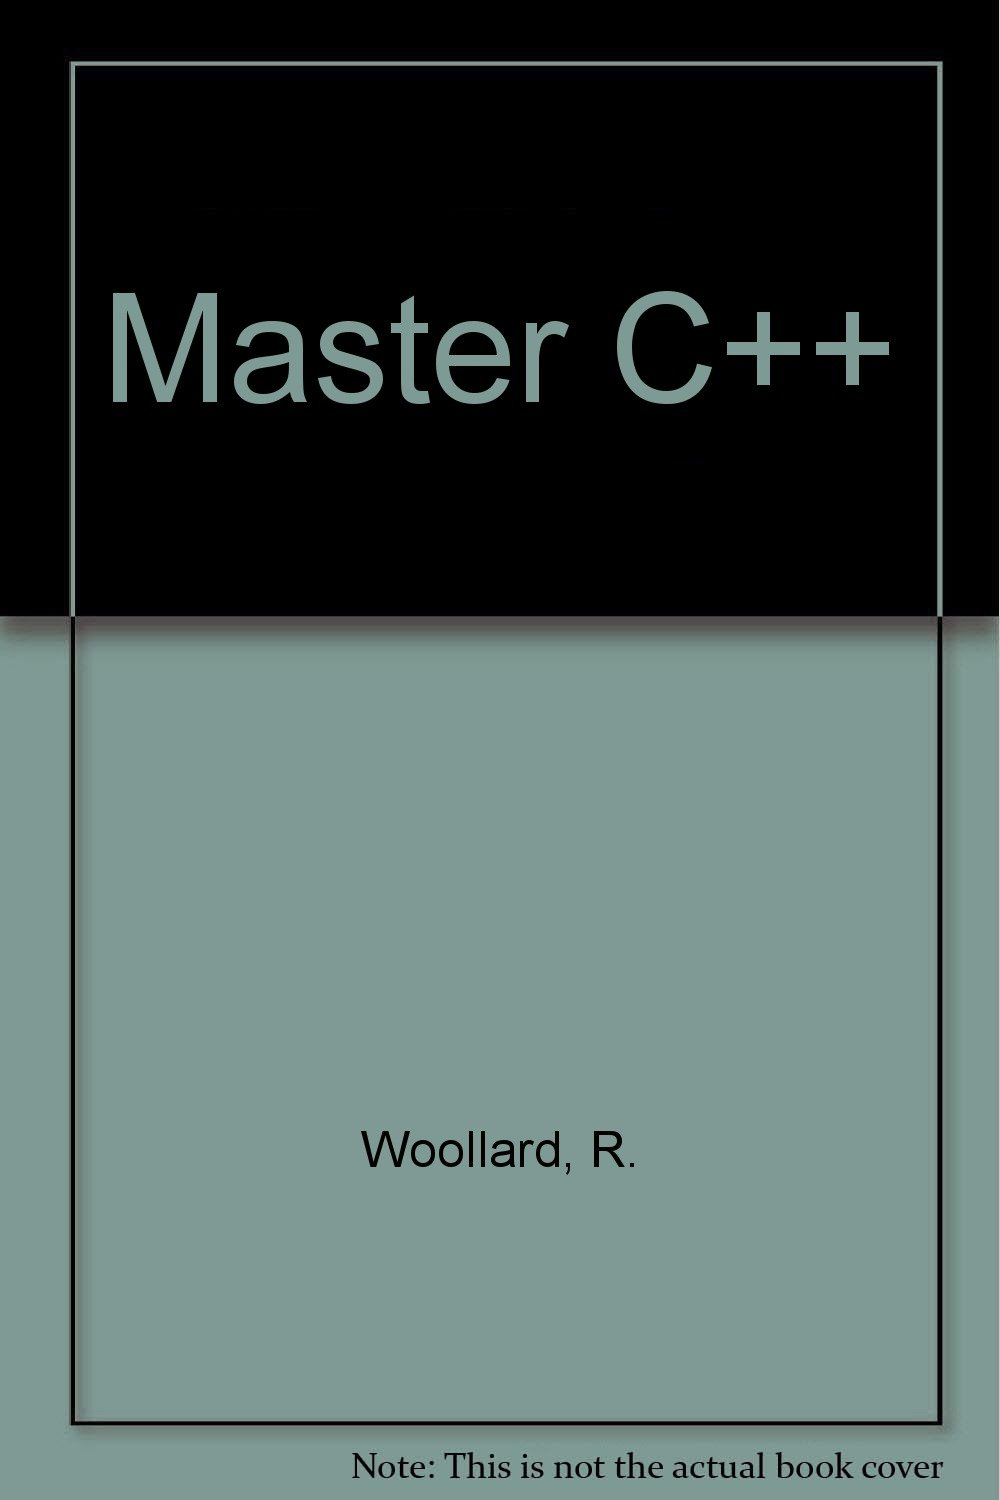 The Waite Group's Master C++: Let the PC Teach You Object-Oriented Programming